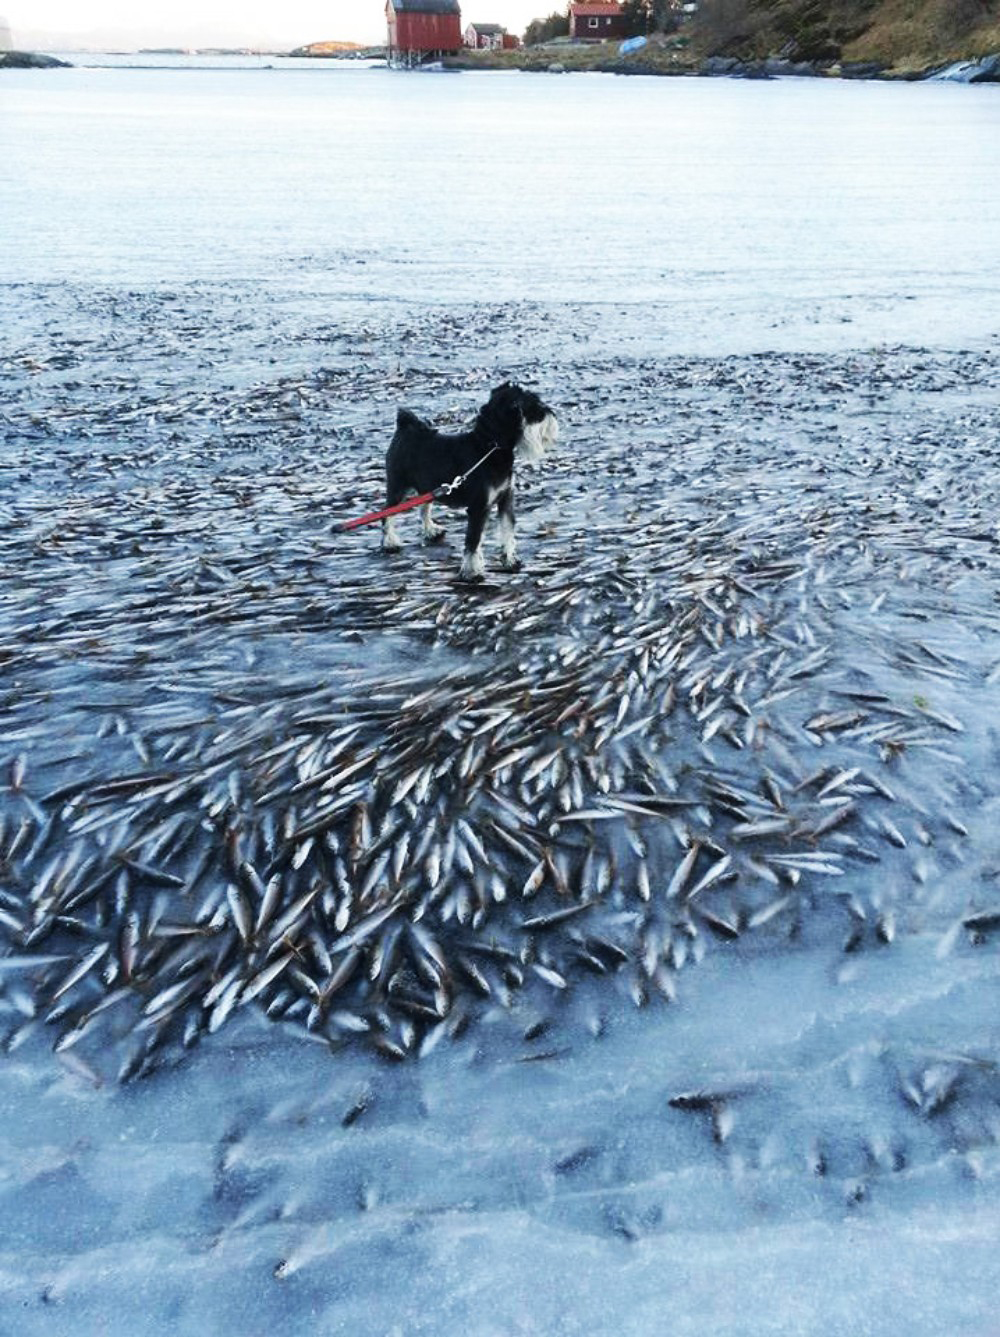 The sea froze so fast that it killed thousands of fish instantly